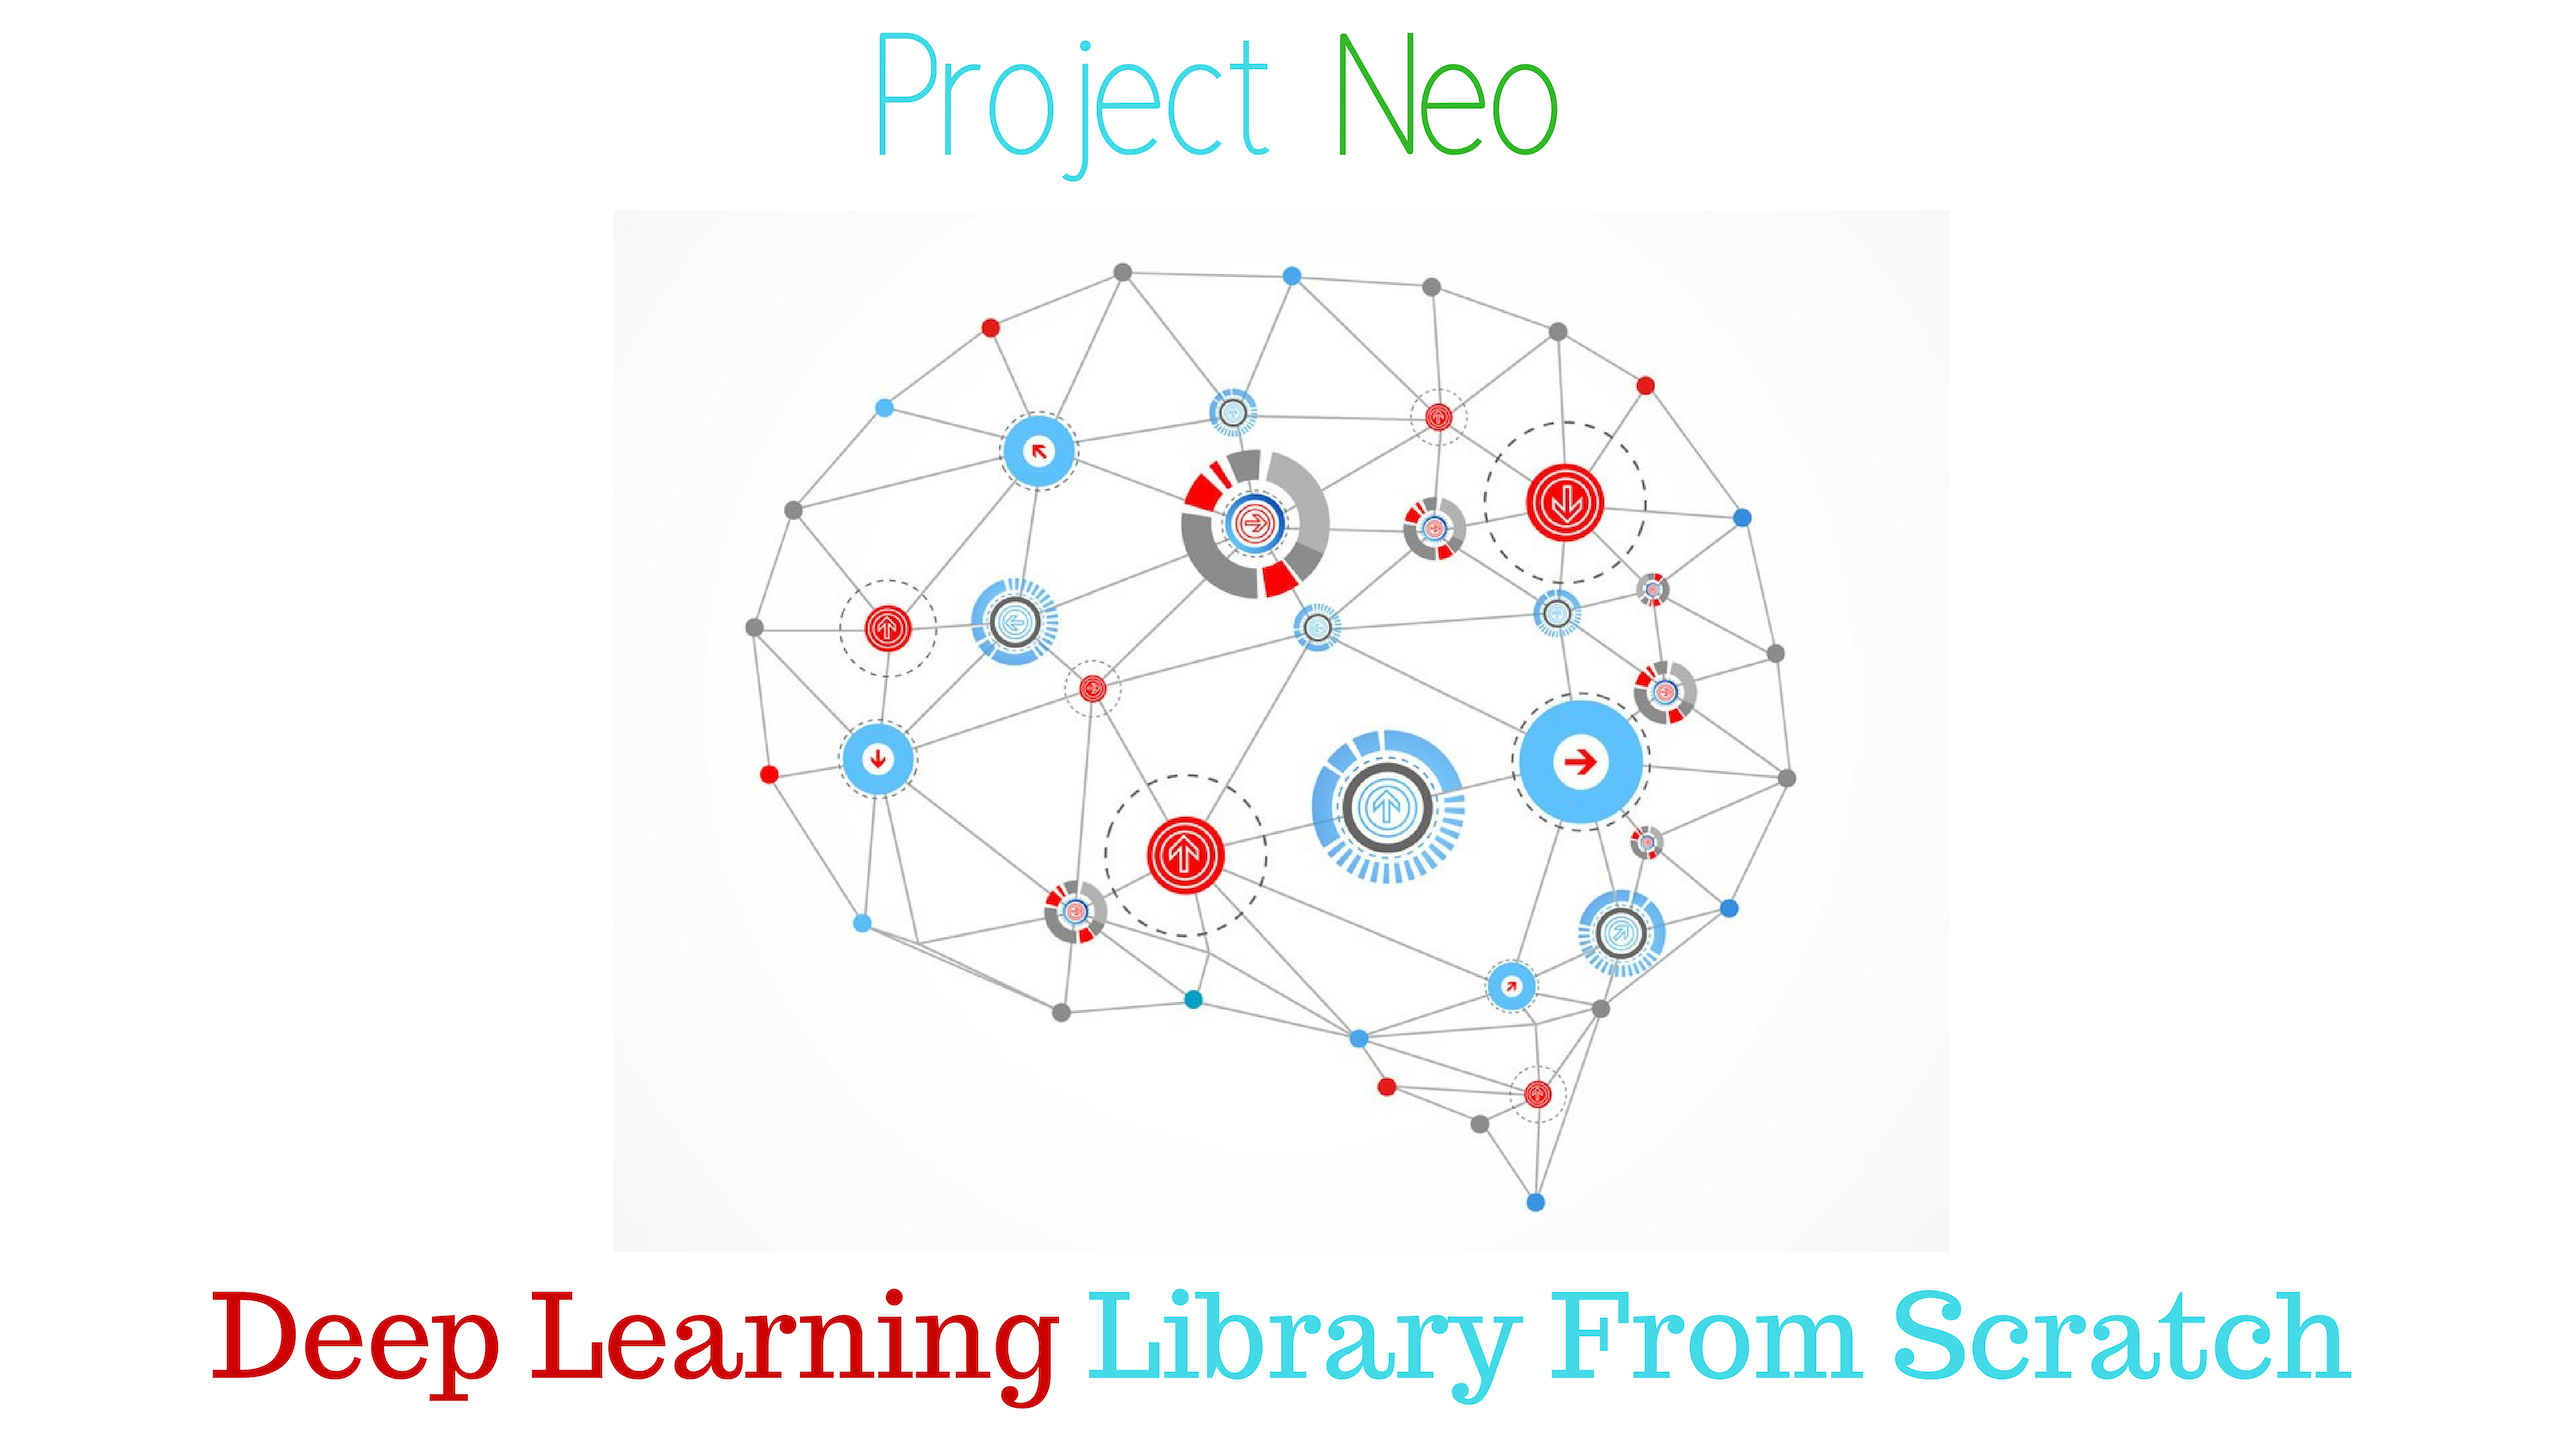 Learn to build Deep Learning library from Scratch!